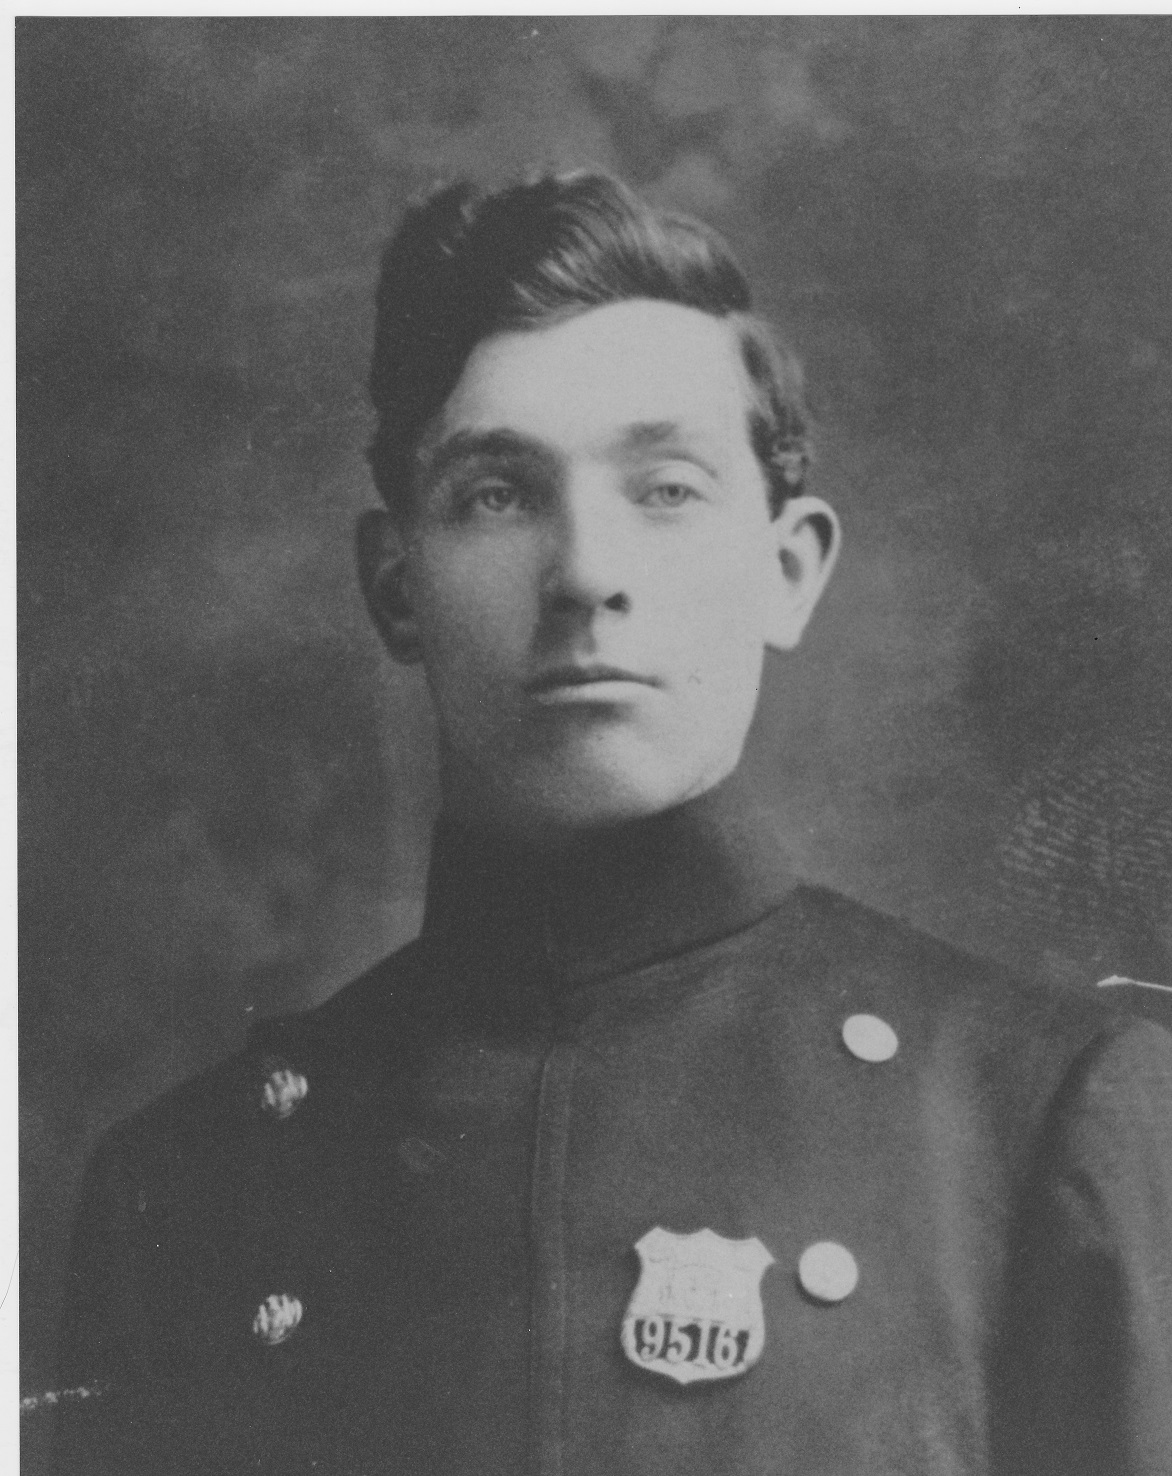 Patrolman Harry J. Padian | New York City Police Department, New York